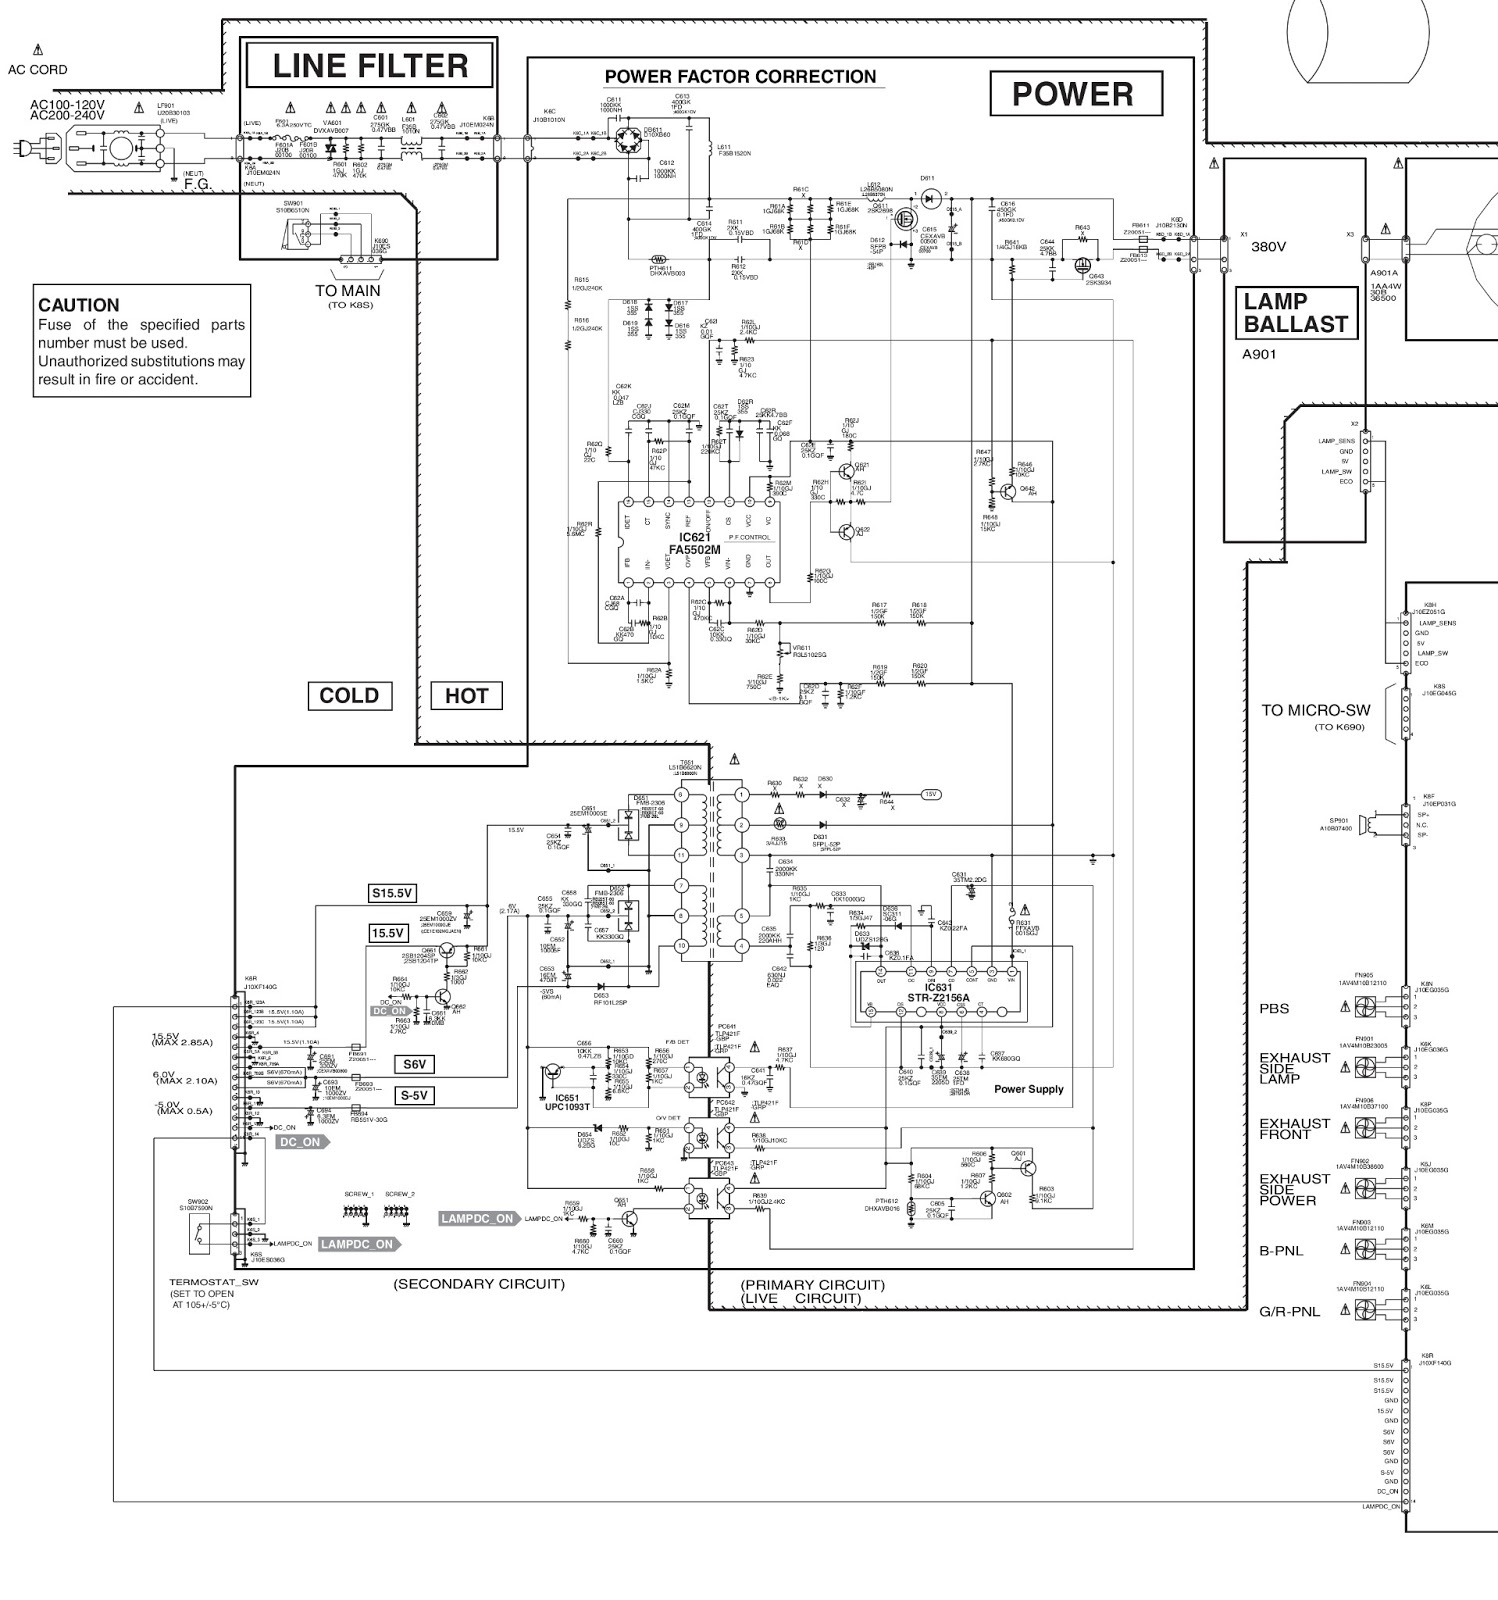 medium resolution of sanyo plc xu87 projector power supply schematic diagrampower side a